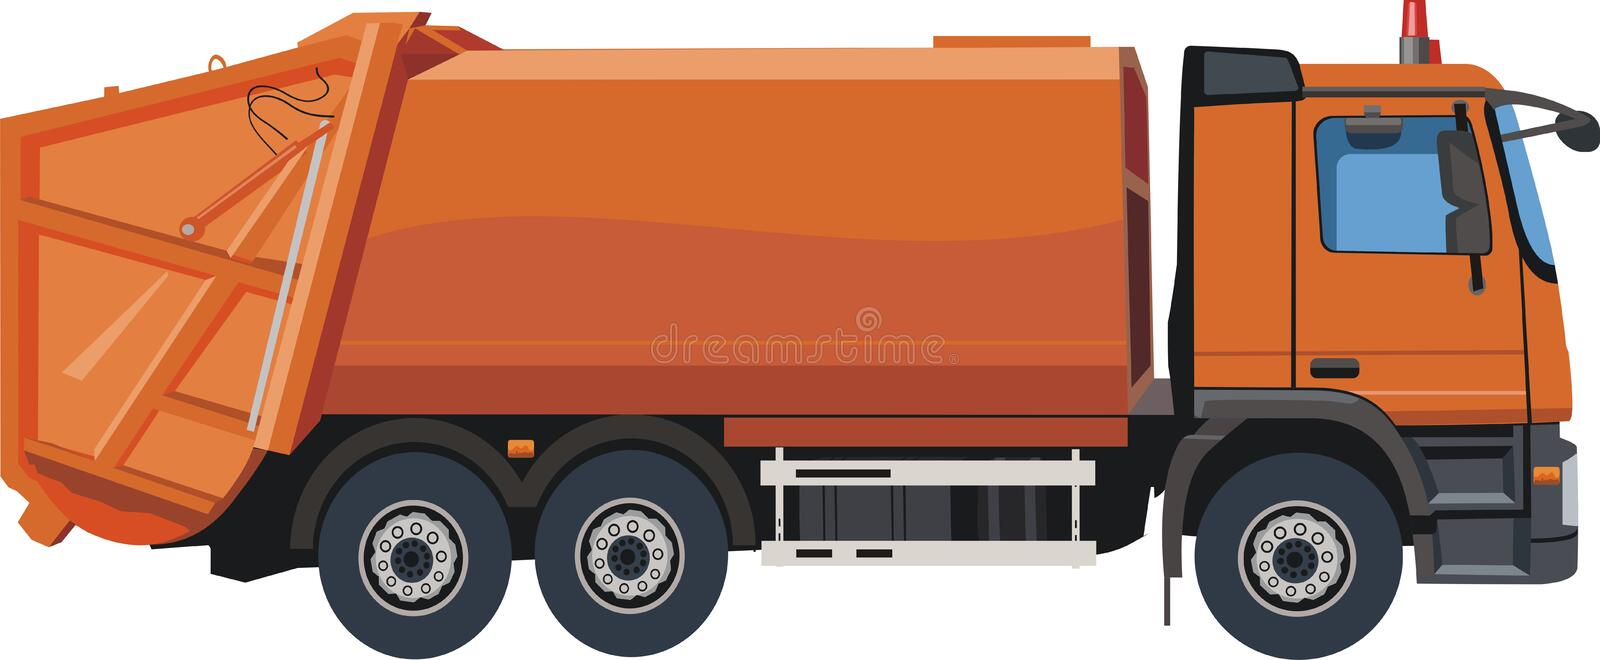 Download Orange dump truck stock vector. Illustration of rear - 26592628